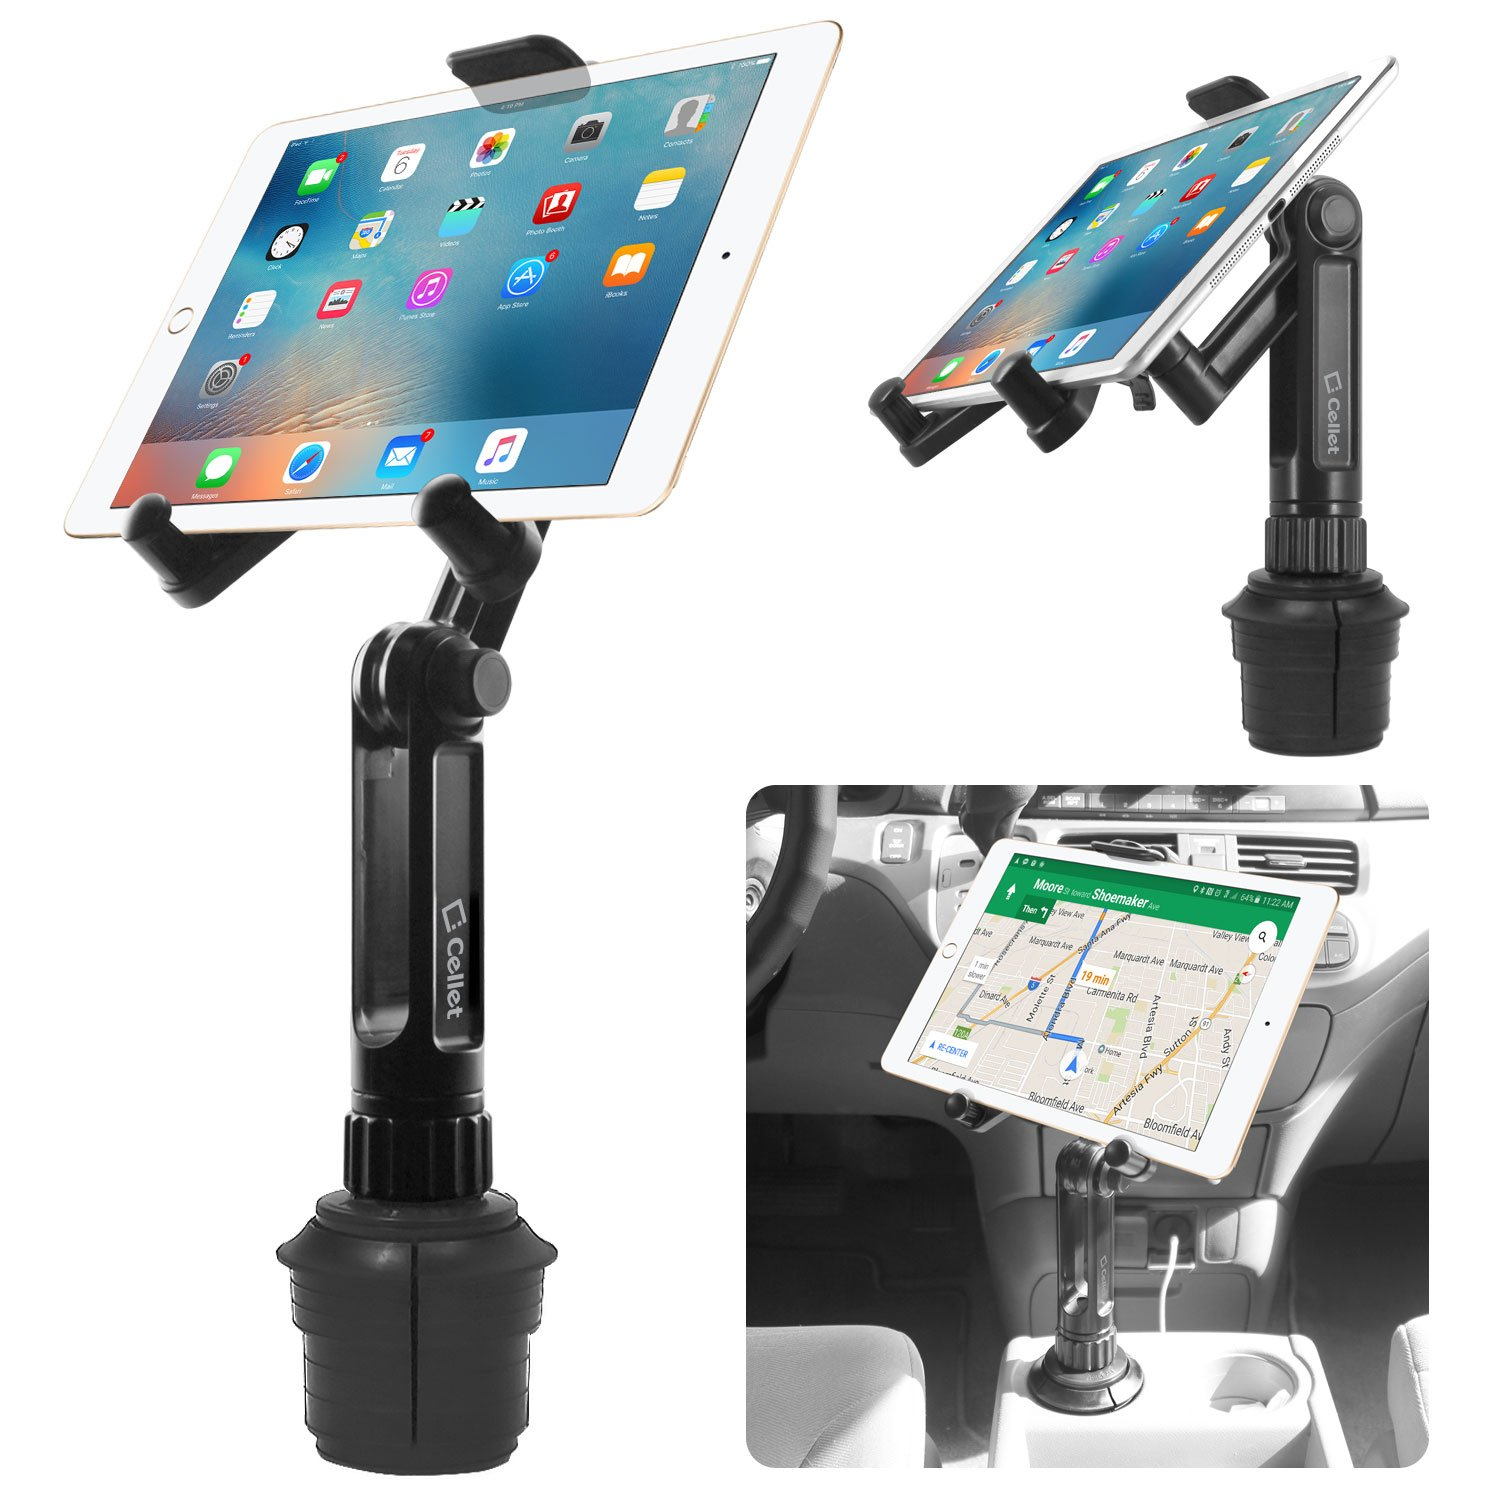 Cup Holder Tablet Mount, Tablet Car Cradle Holder Made by Cellet Compatible for iPad Pro/Air 2019/Mini iPad 9.7 Samsung Galaxy Tab S5e S4 S3 LG tab Micro Soft Surface Go Pro 6 Google Pixel Slate by Cellet